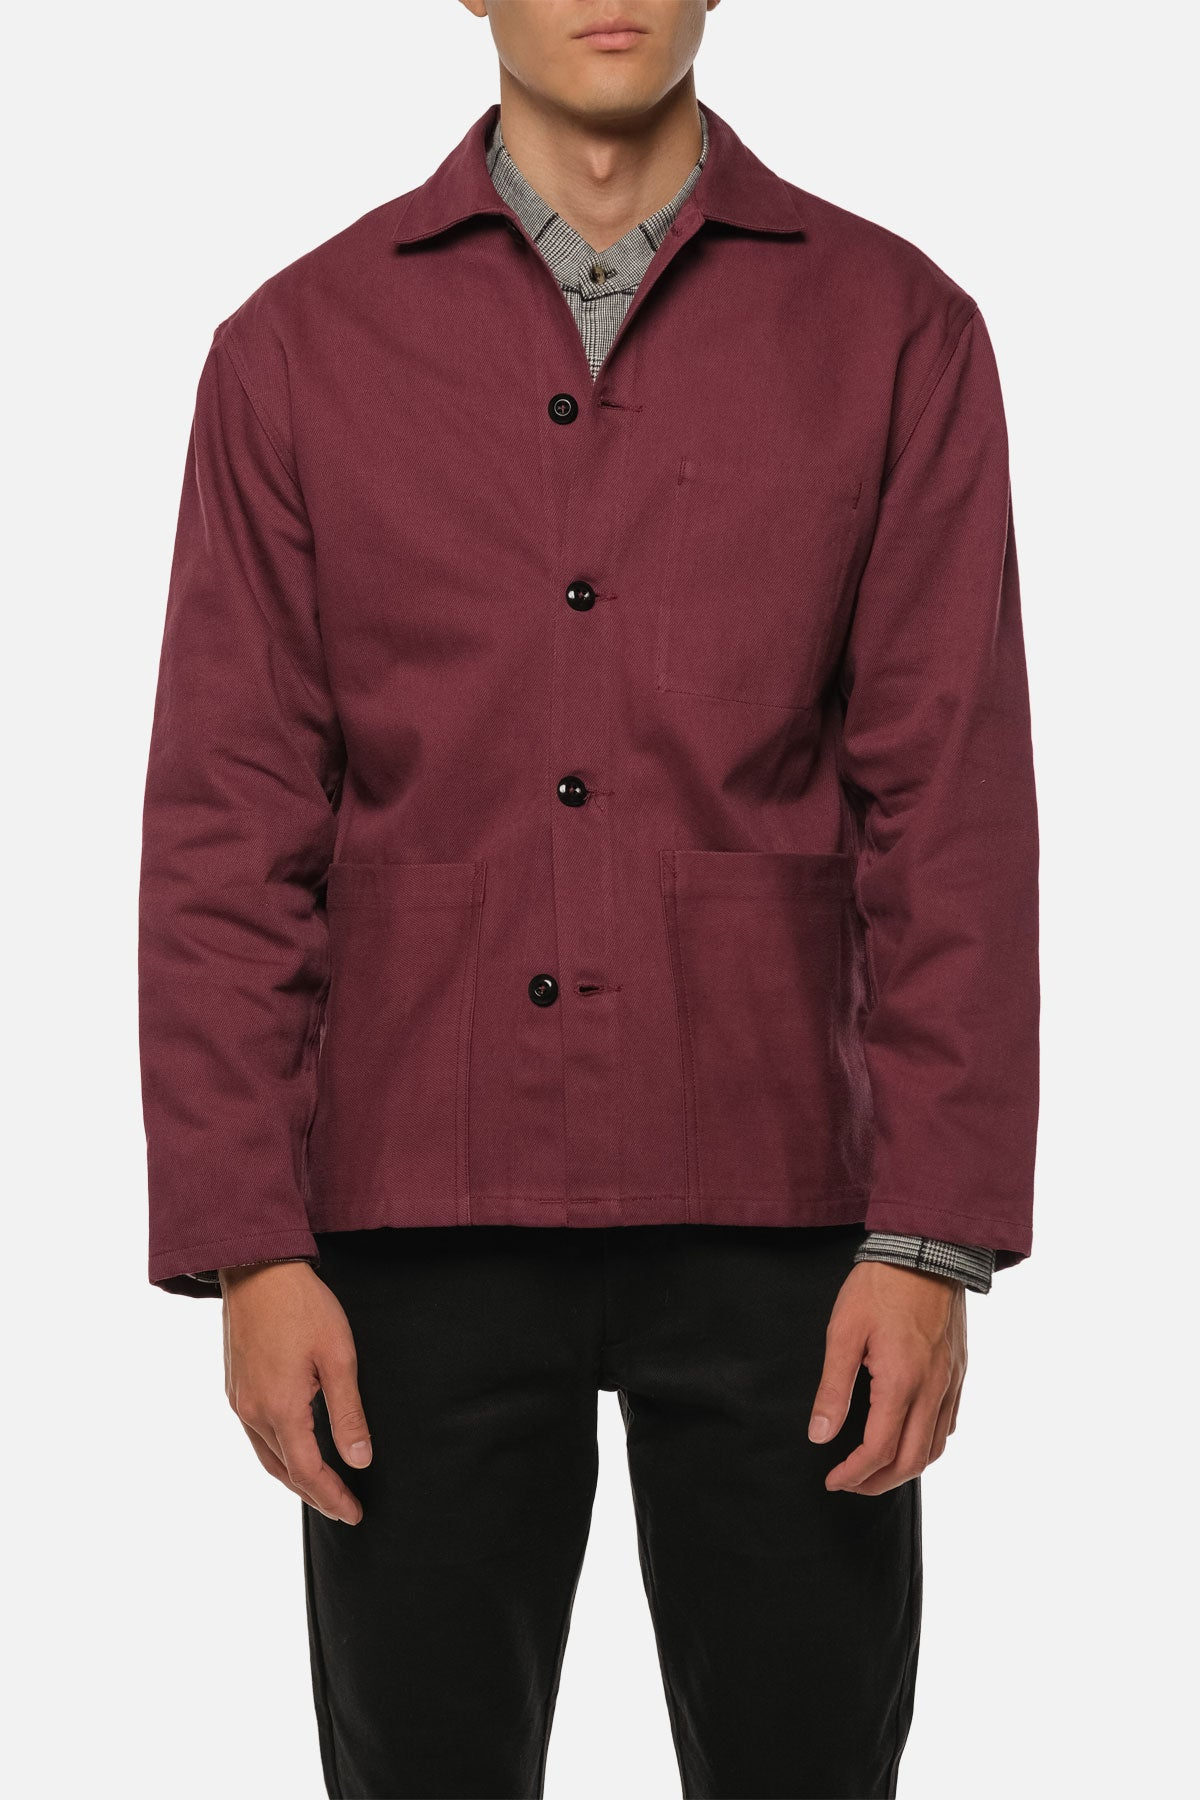 STATION JACKET IN CRIMSON - Fortune Goods